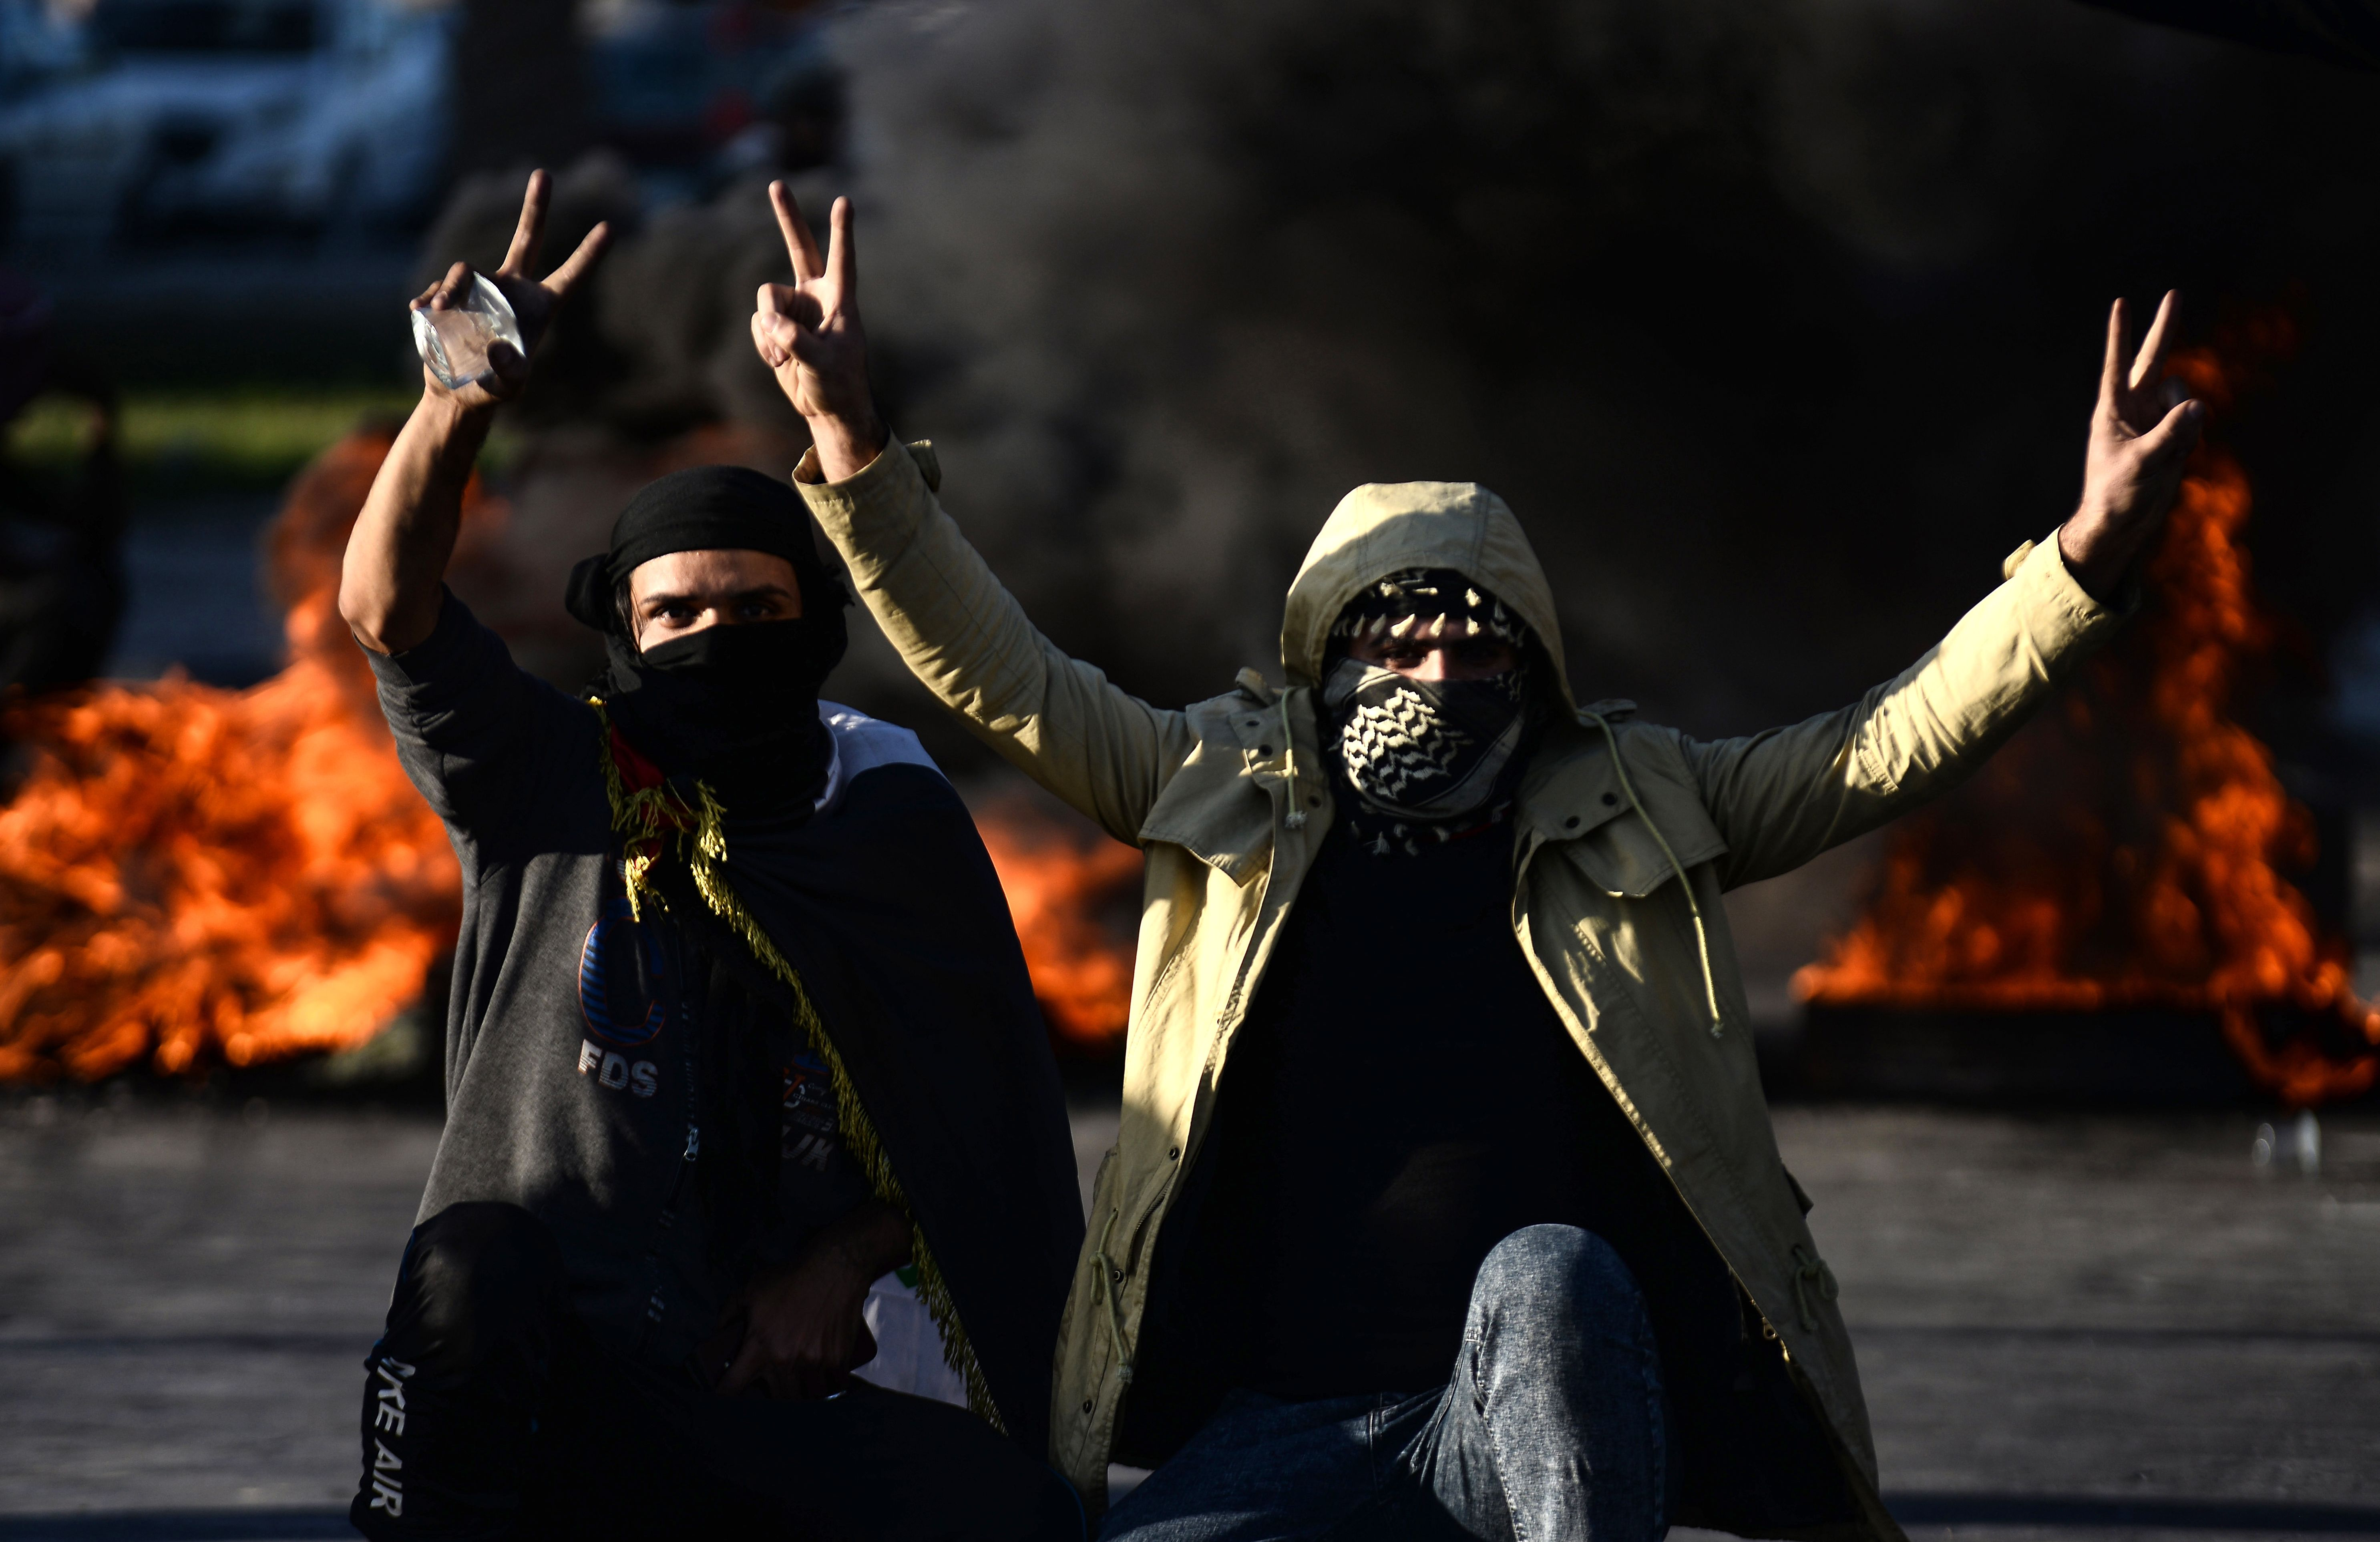 Iraqi demonstrators flash the victory sign next to burning tyres as angry protesters blocked roads in the central shrine city of Najaf, on Jan. 5, 2020